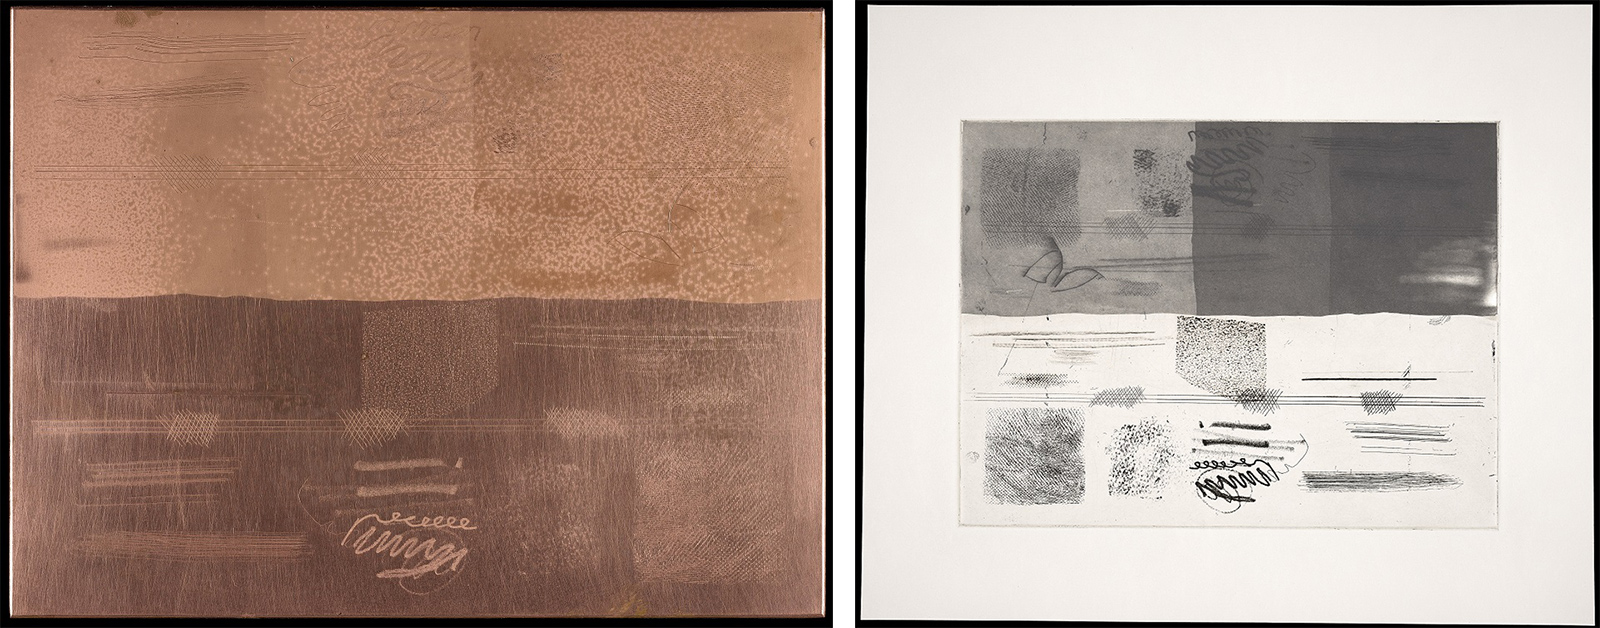 Copper test plate on left, print of textures and scribbles on right